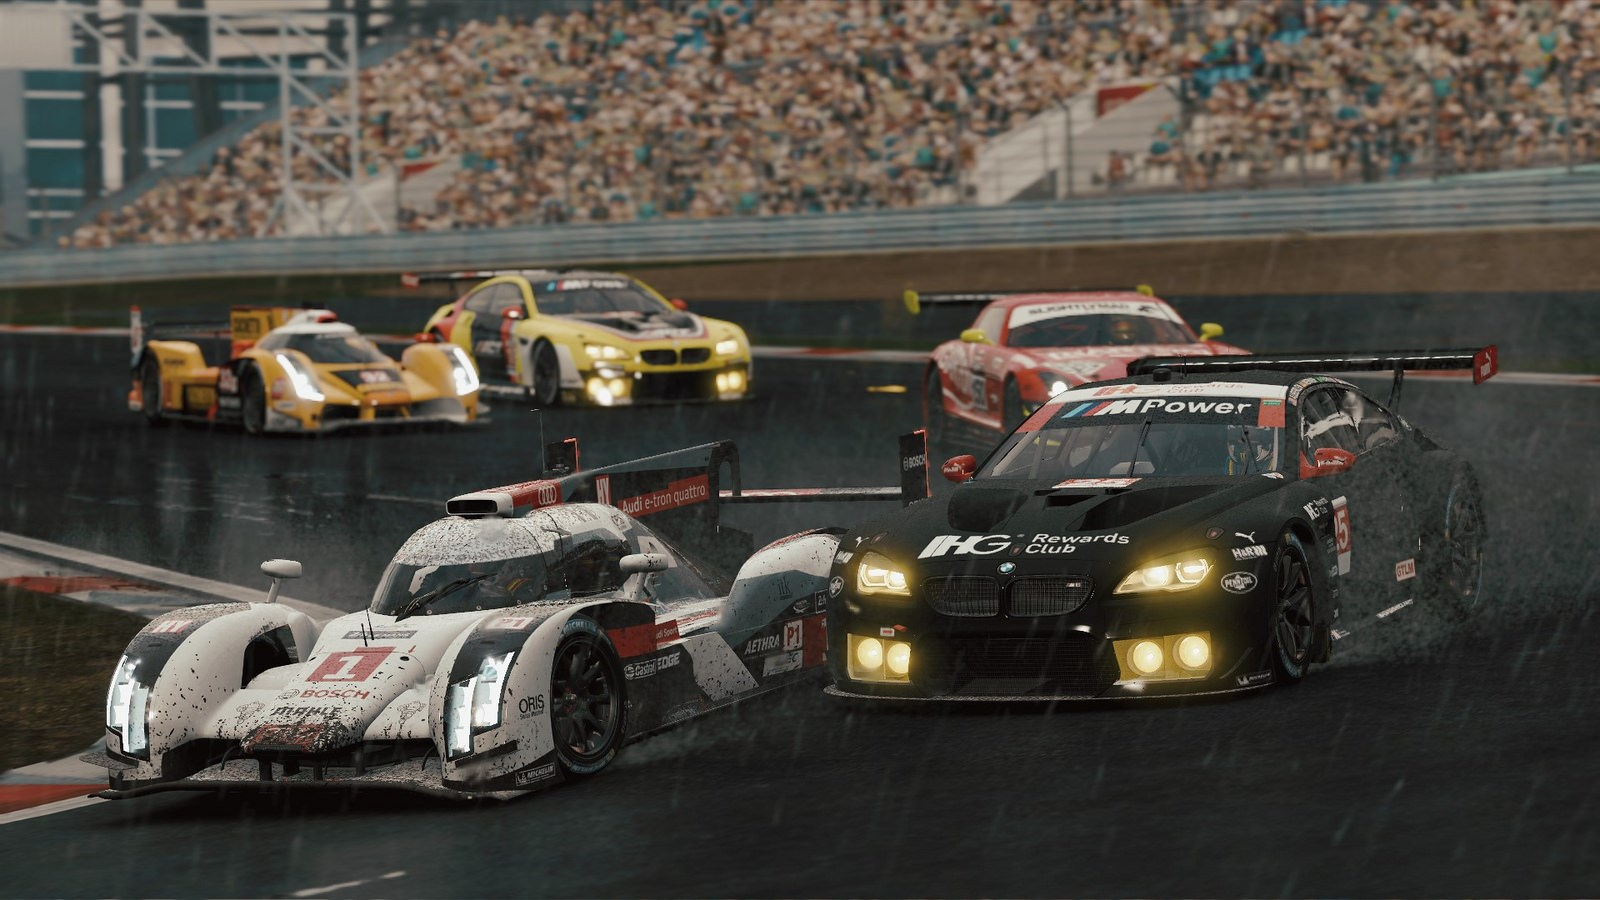 Best racing games 2019 on PS4 and Xbox One: the top 6